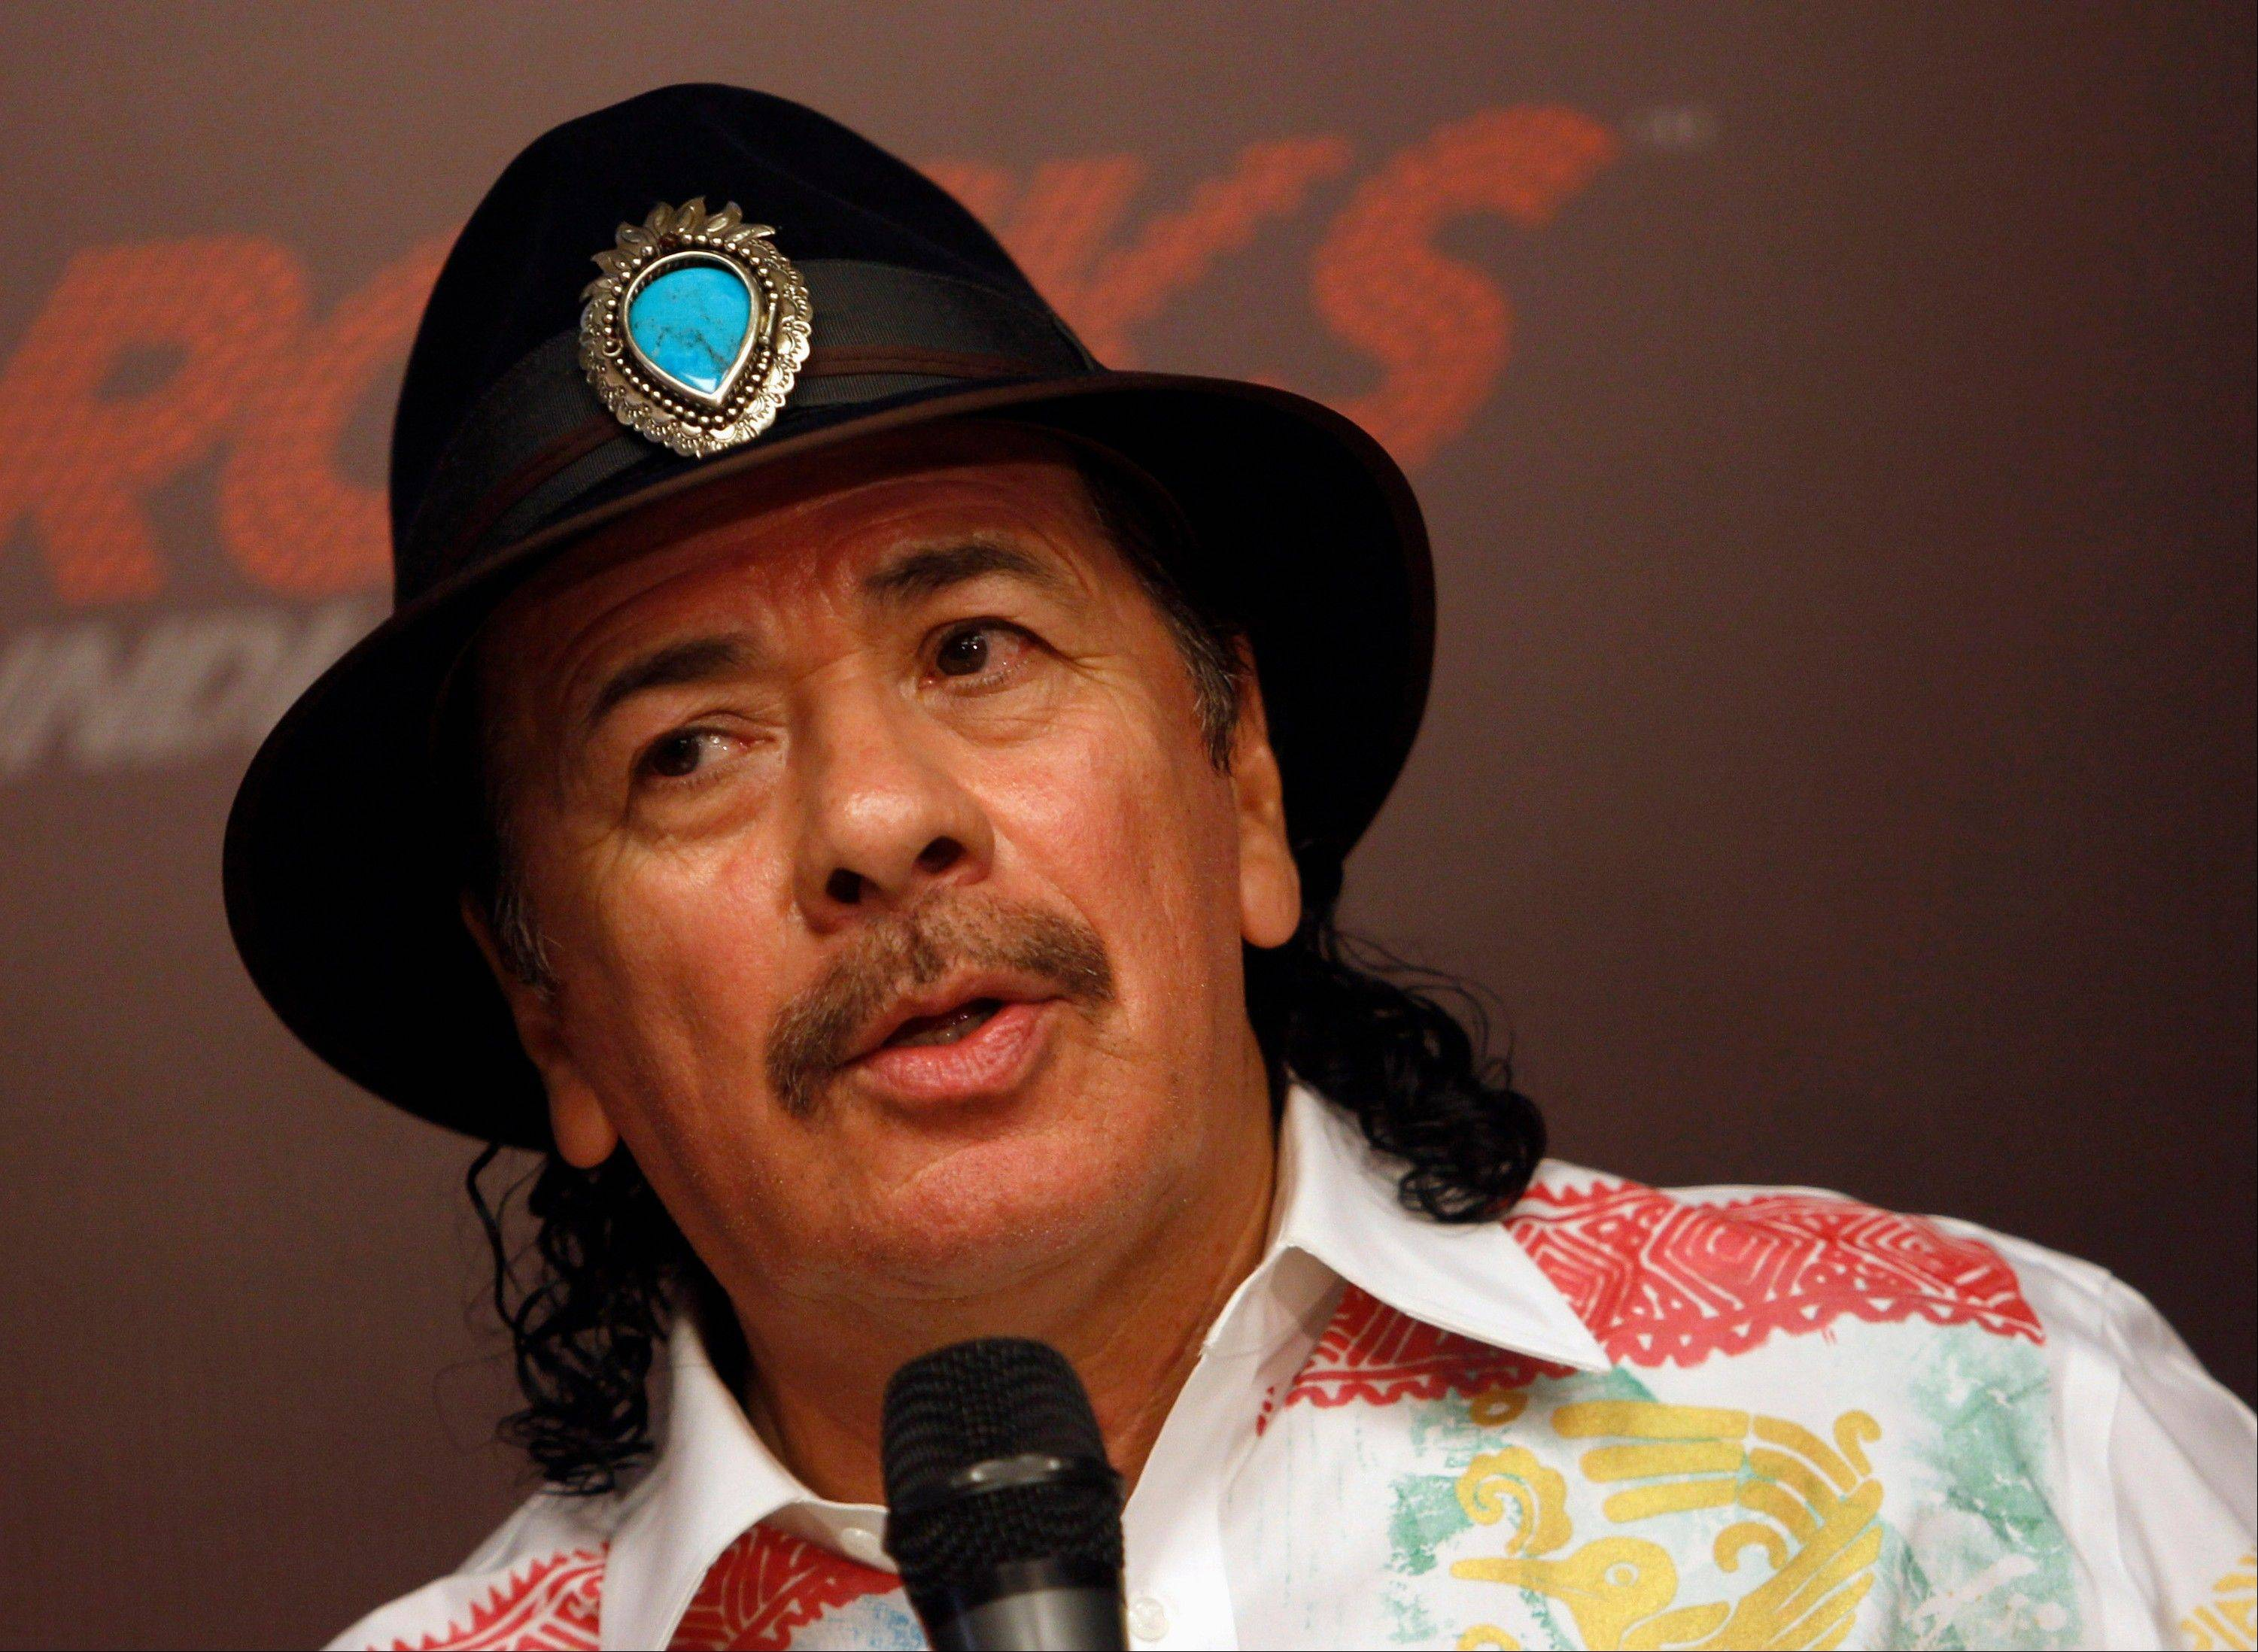 Musician Carlos Santana along with Billy Joel, jazz artist Herbie Hancock, opera star Martina Arroyo and actress Shirley MacLaine will receive this year's Kennedy Center Honors.